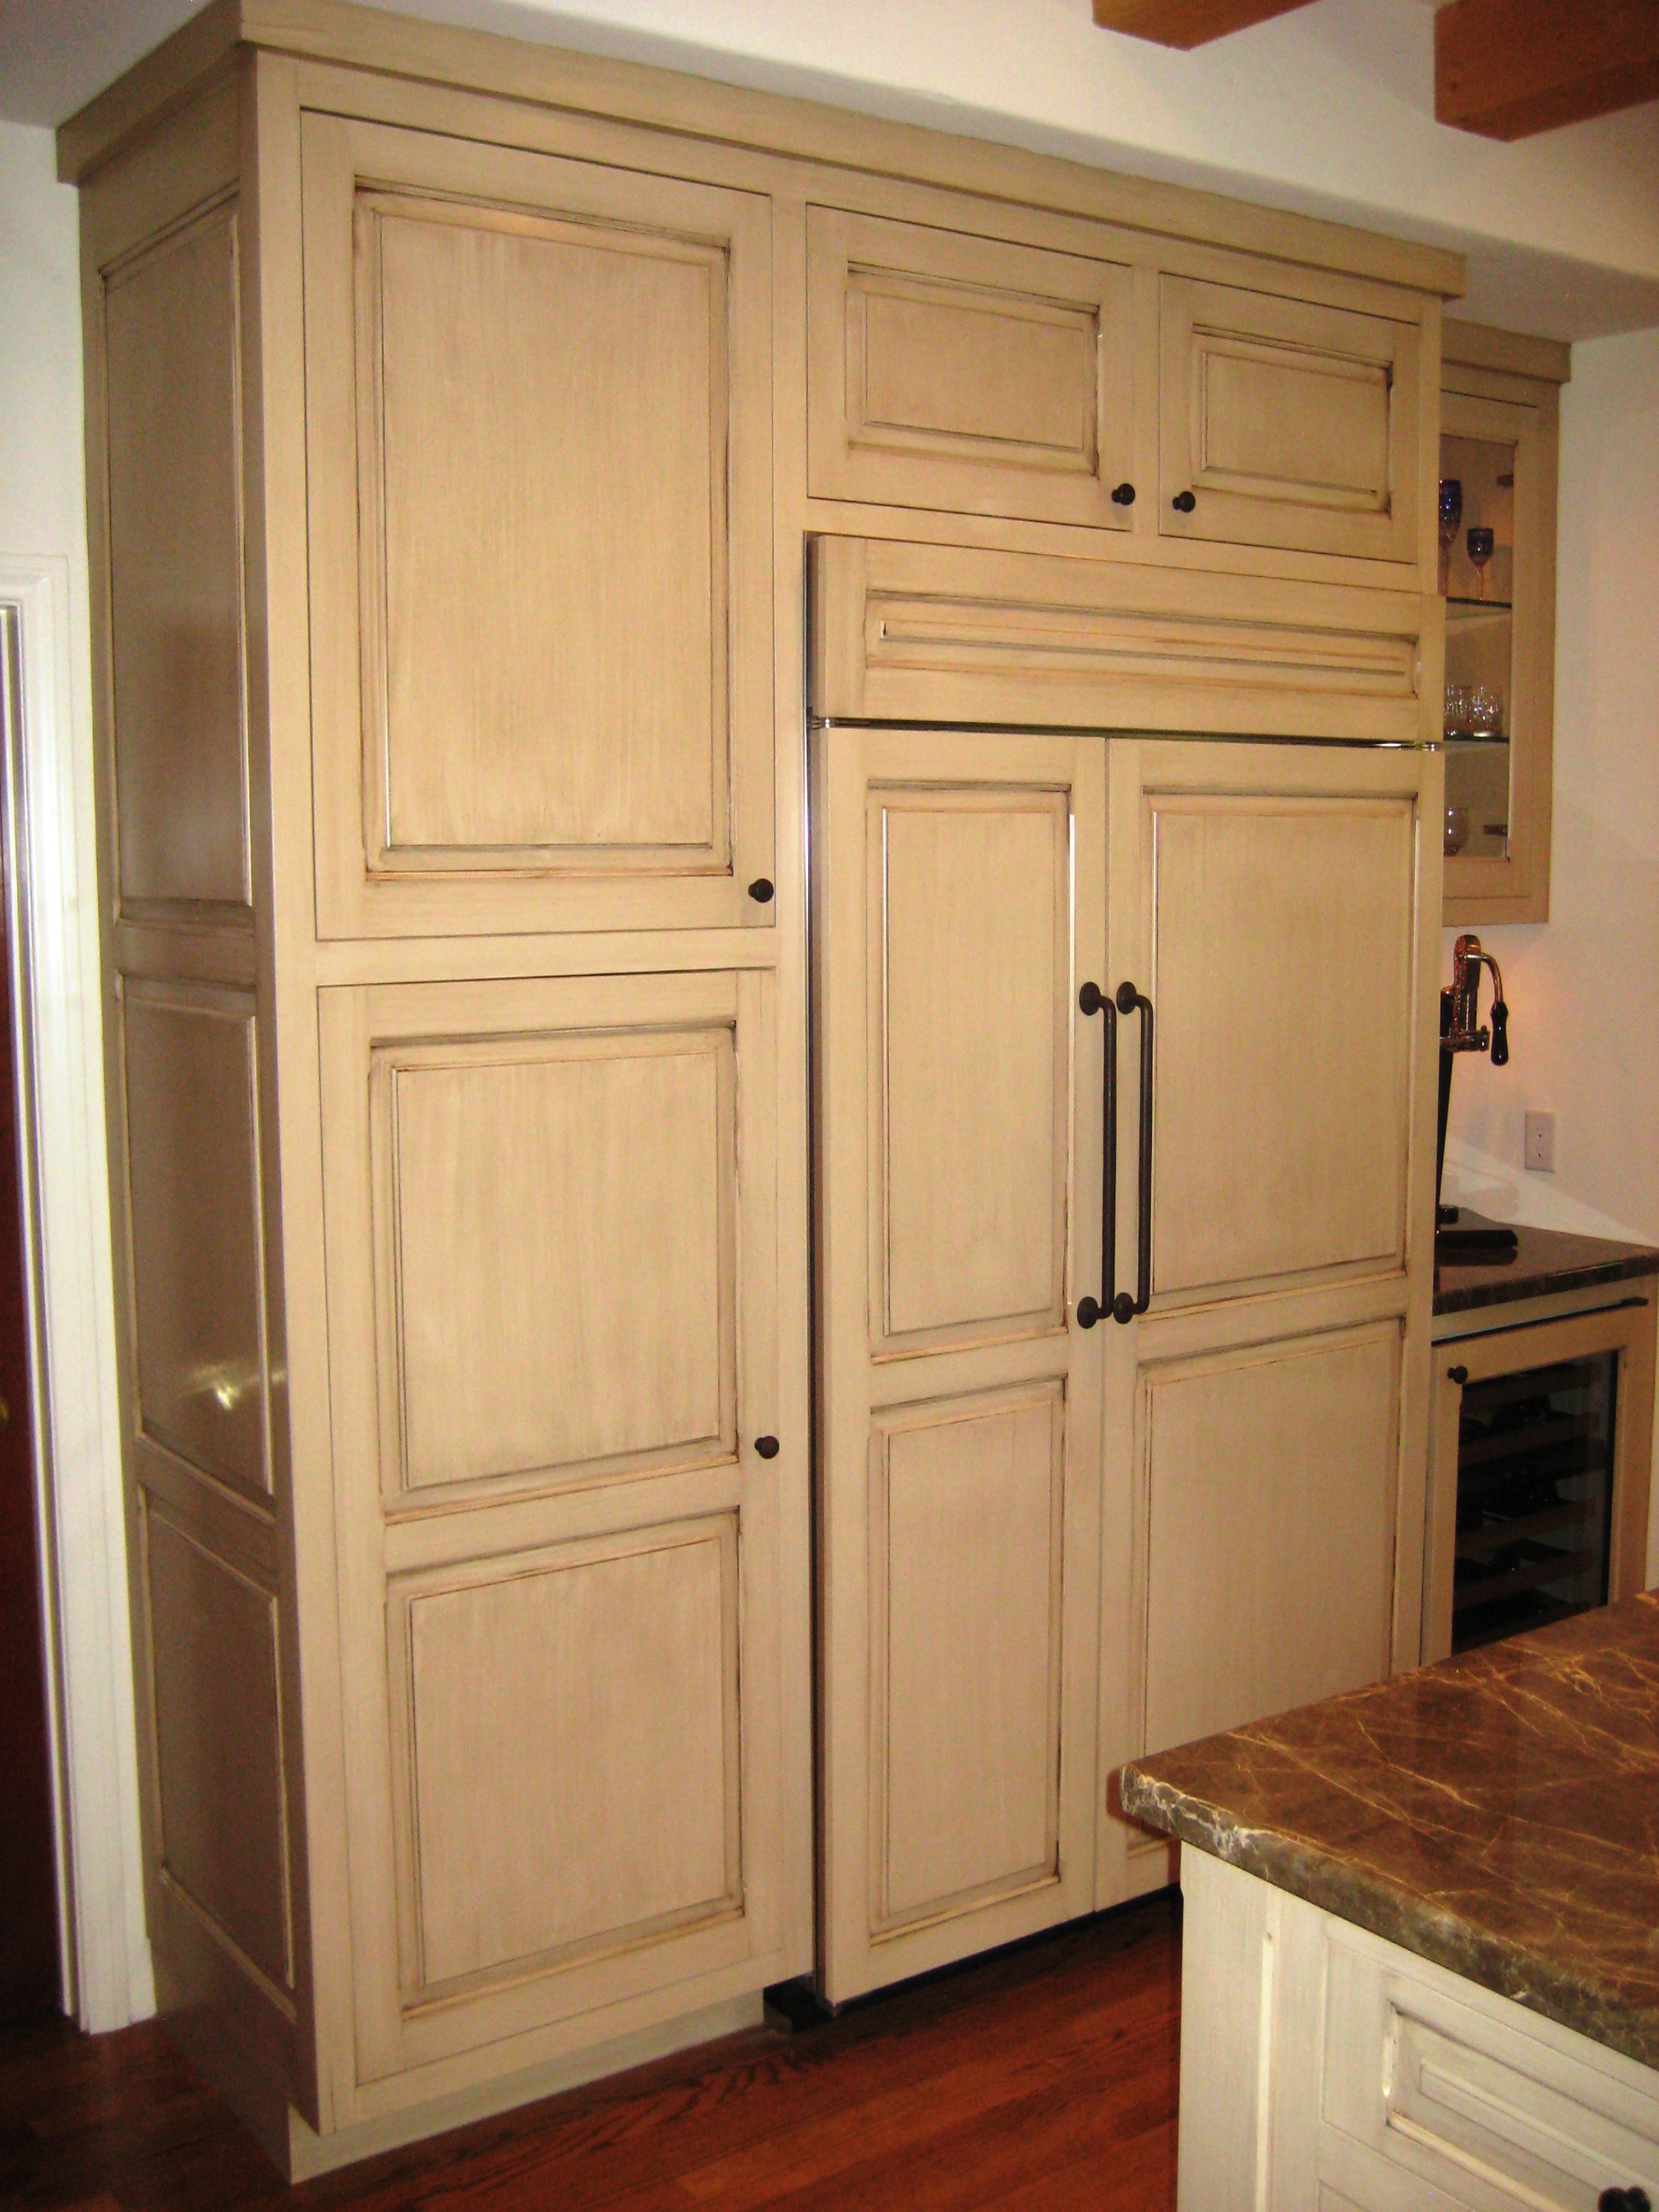 Antique kitchen 020 custom cabinets by mahnken cabinets for Cabinetry kitchen cabinets